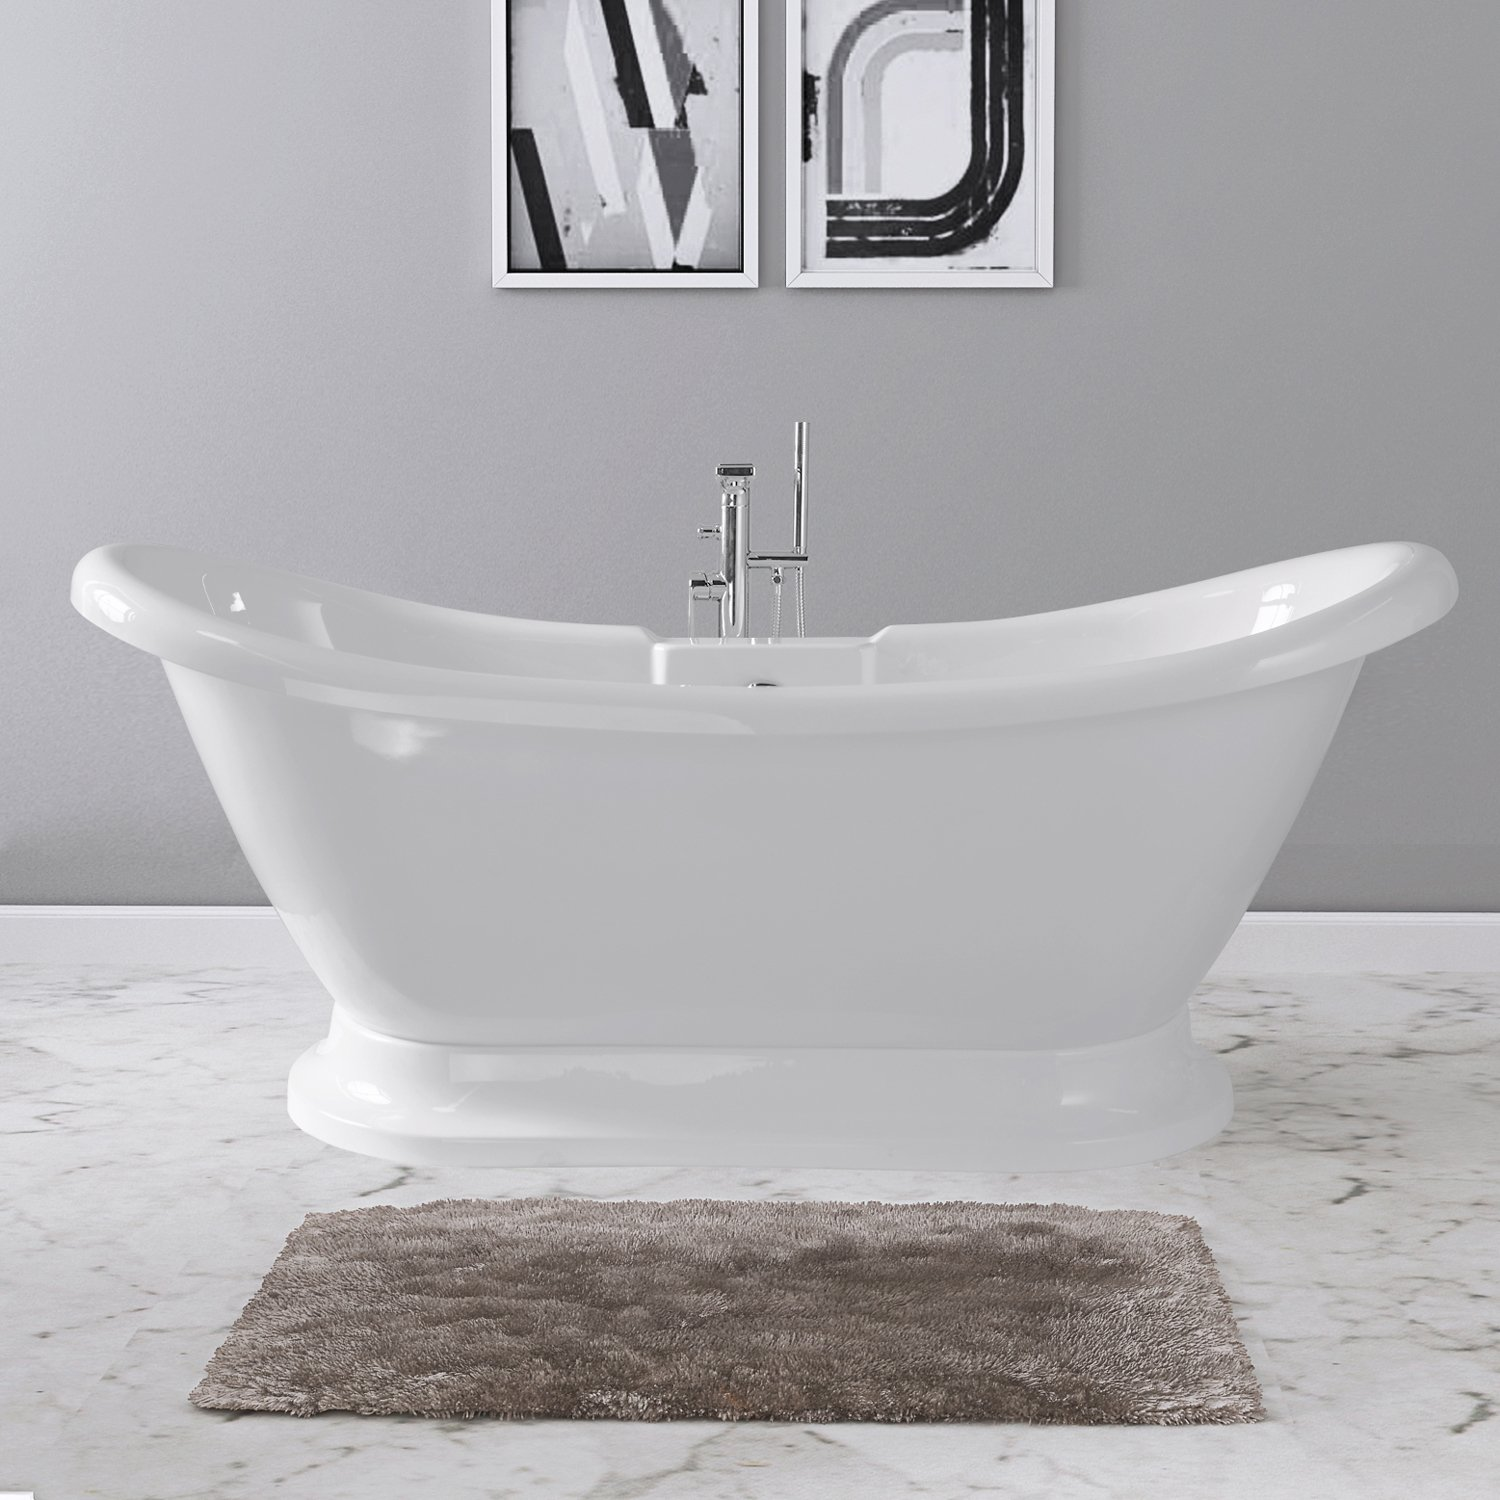 MAYKKE Dorothy 69 Inch Traditional Oval Bathroom Acrylic Bathtub Freestanding White Bath Tubs for a Home | Double Slipper Soaker | cUPC Certified, OMA1128003